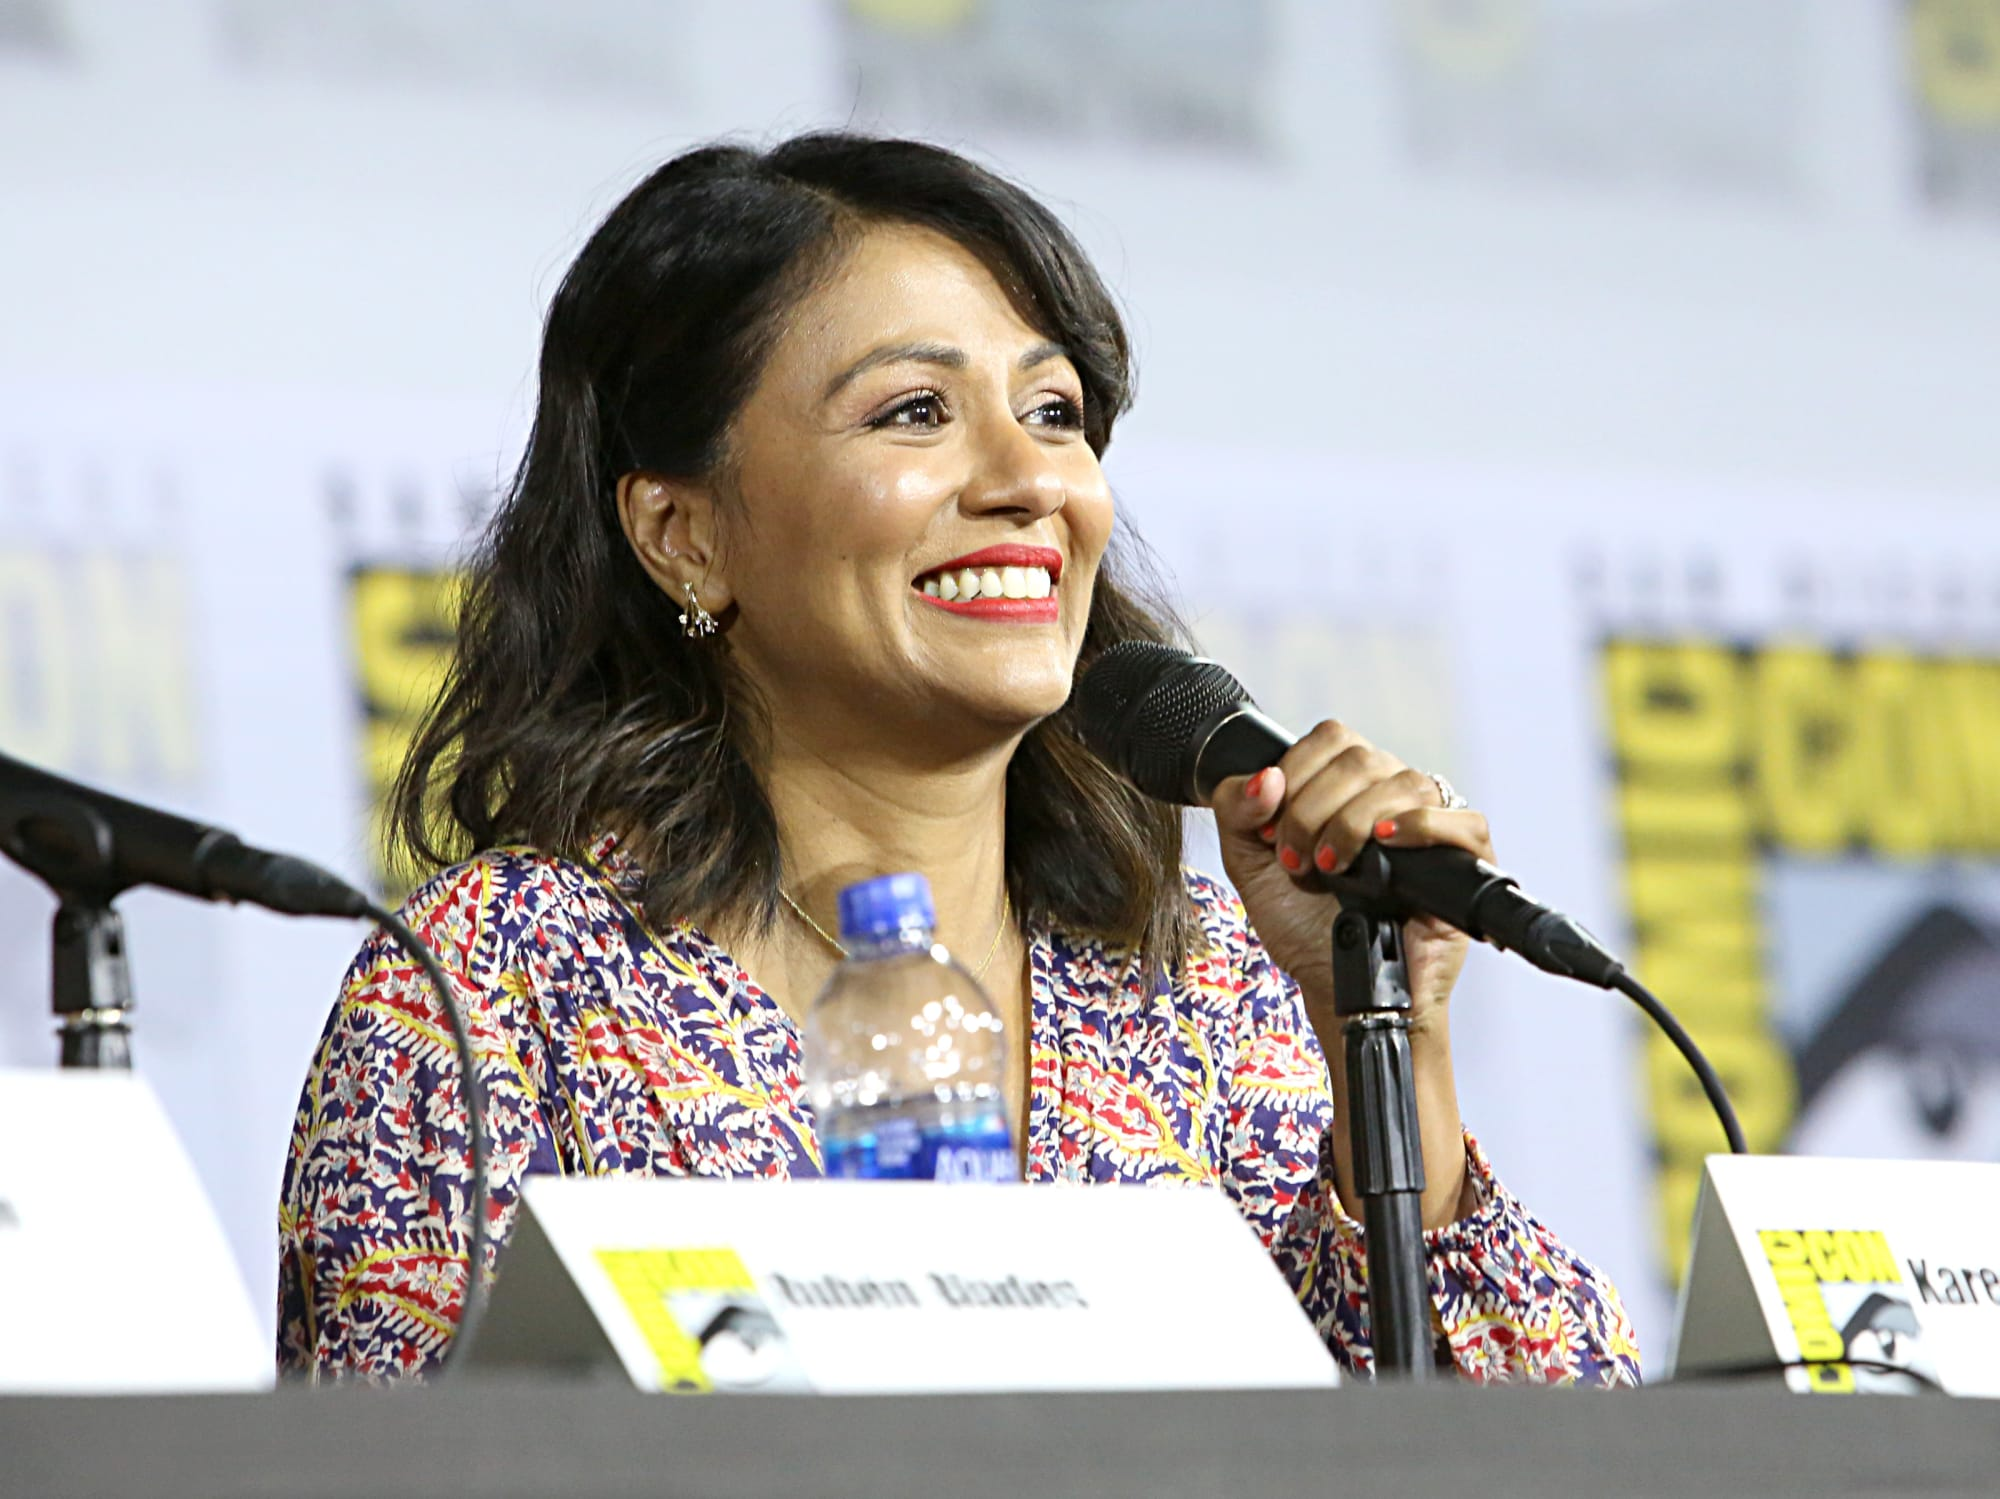 Undead Walking Podcast: Chatting with Fear TWD star Karen David